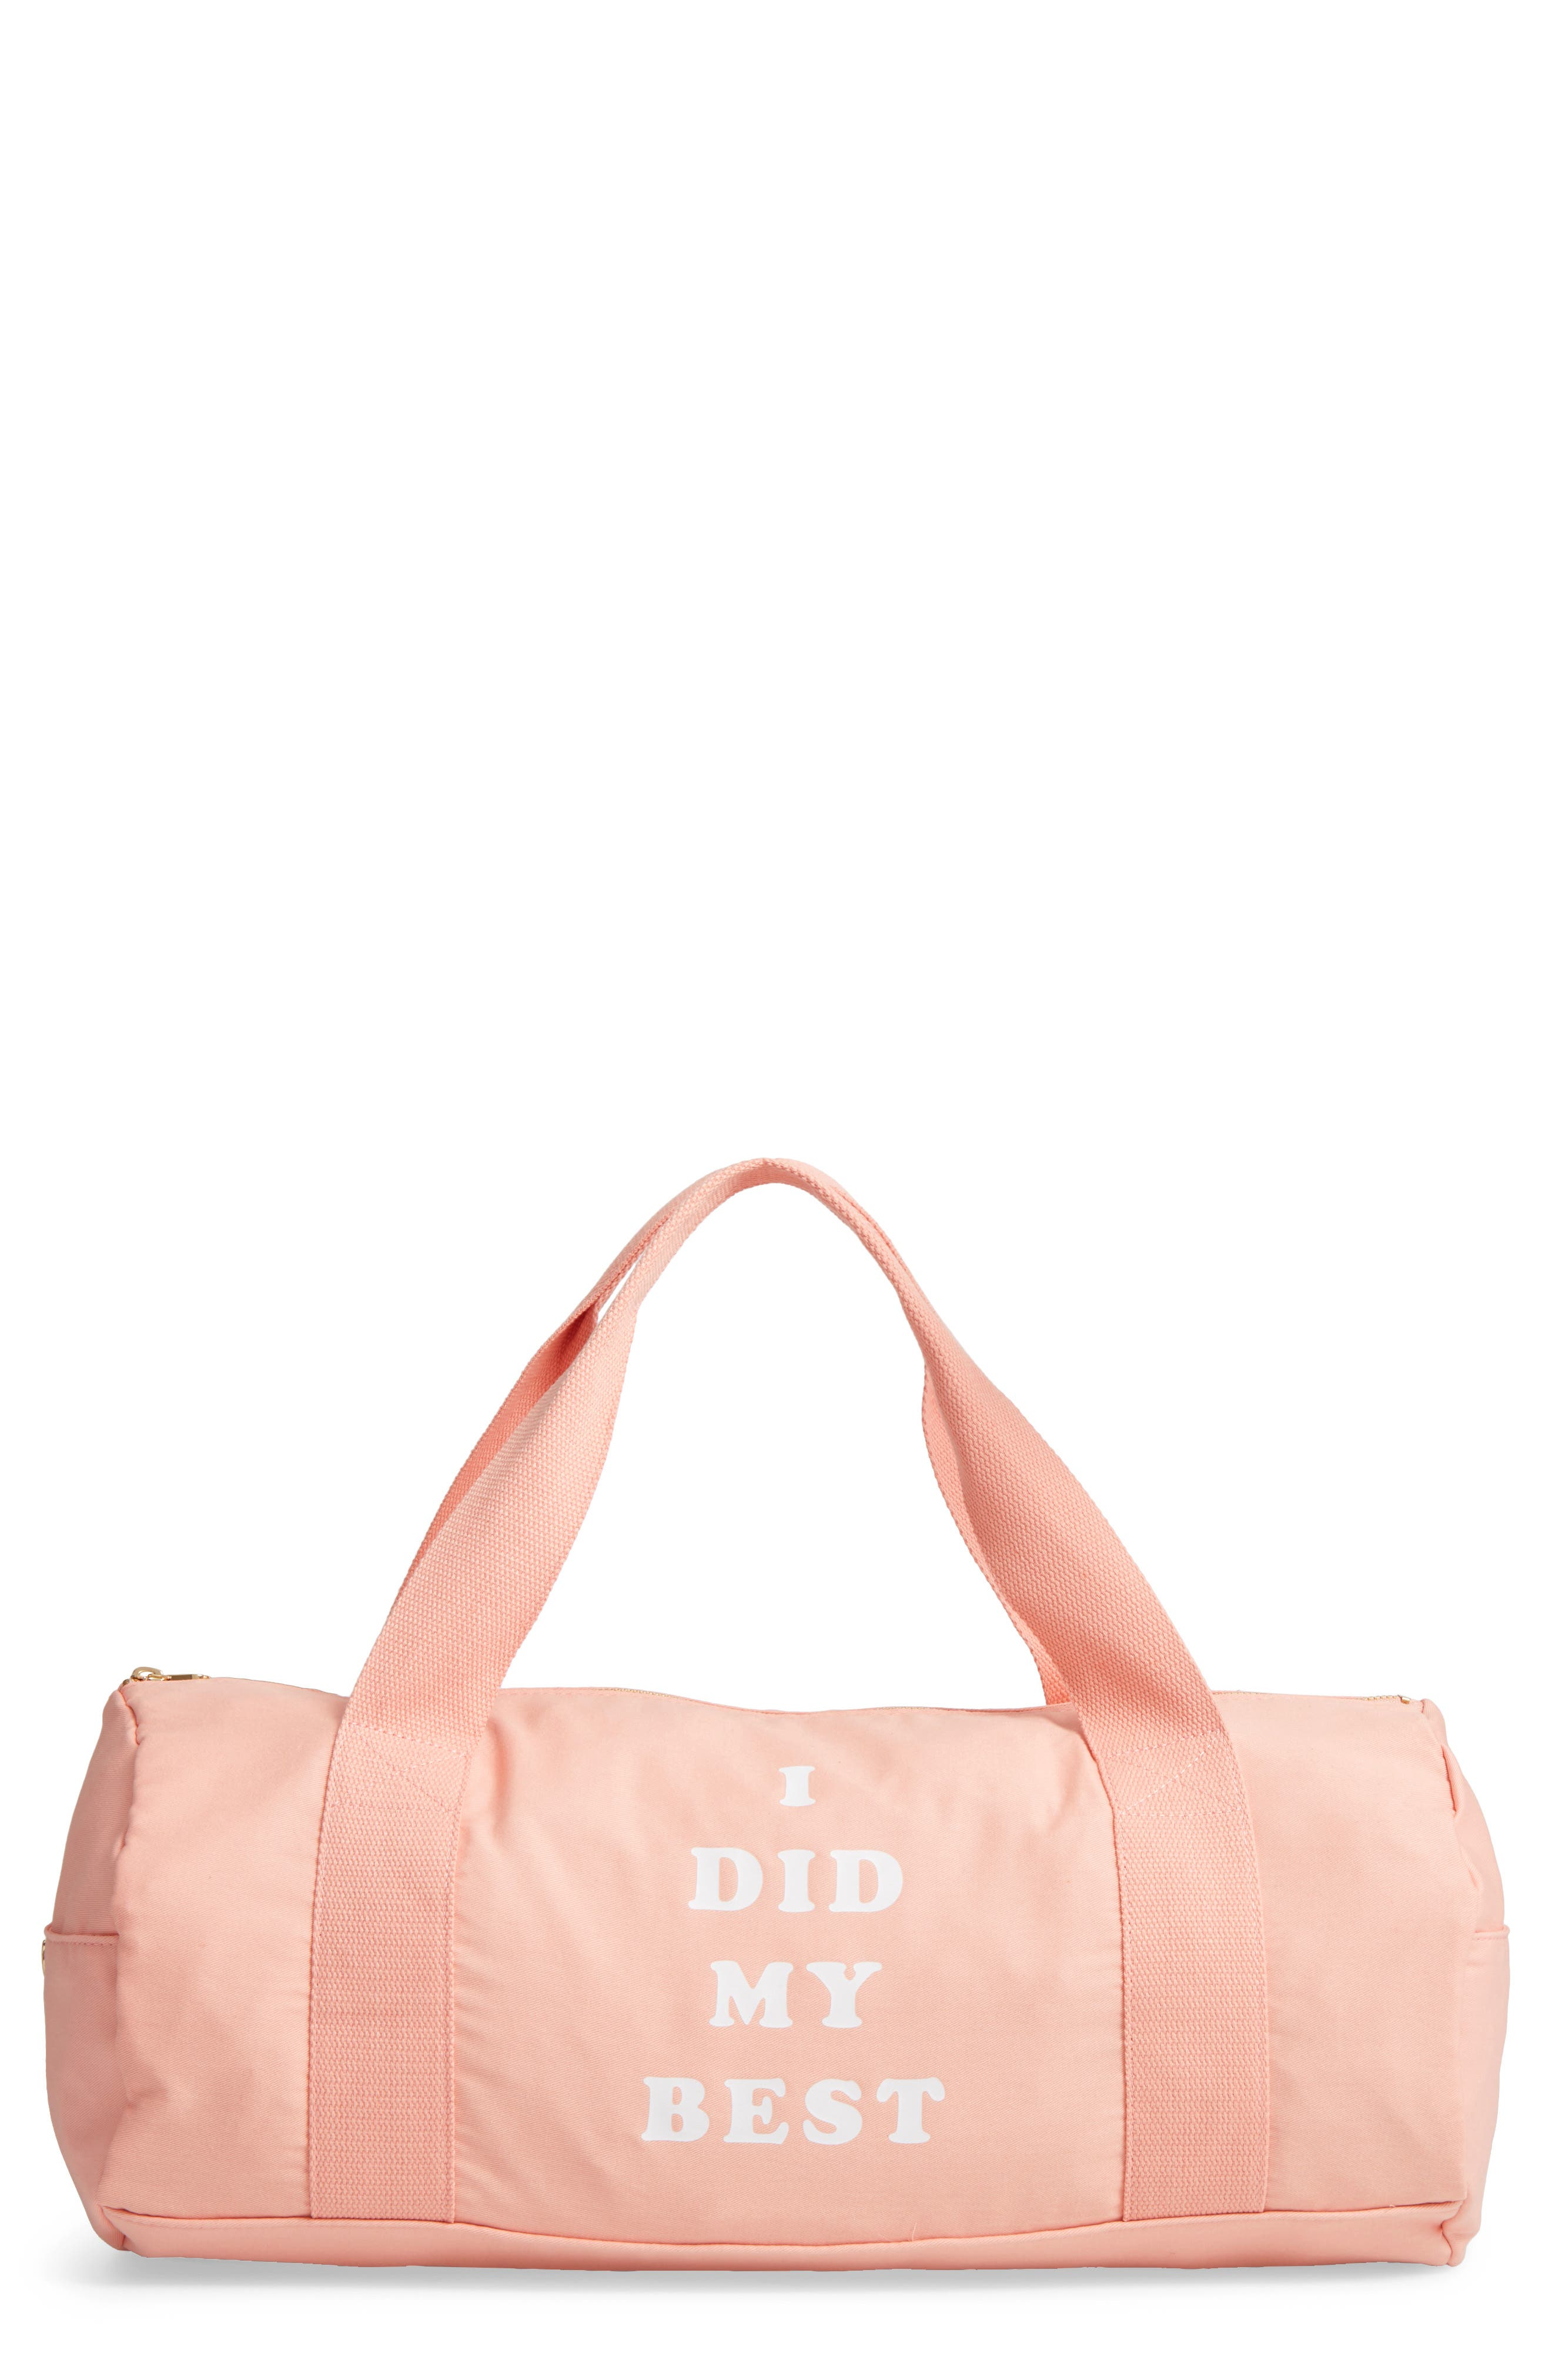 ban.do Work It Out - I Did My Best Gym Bag